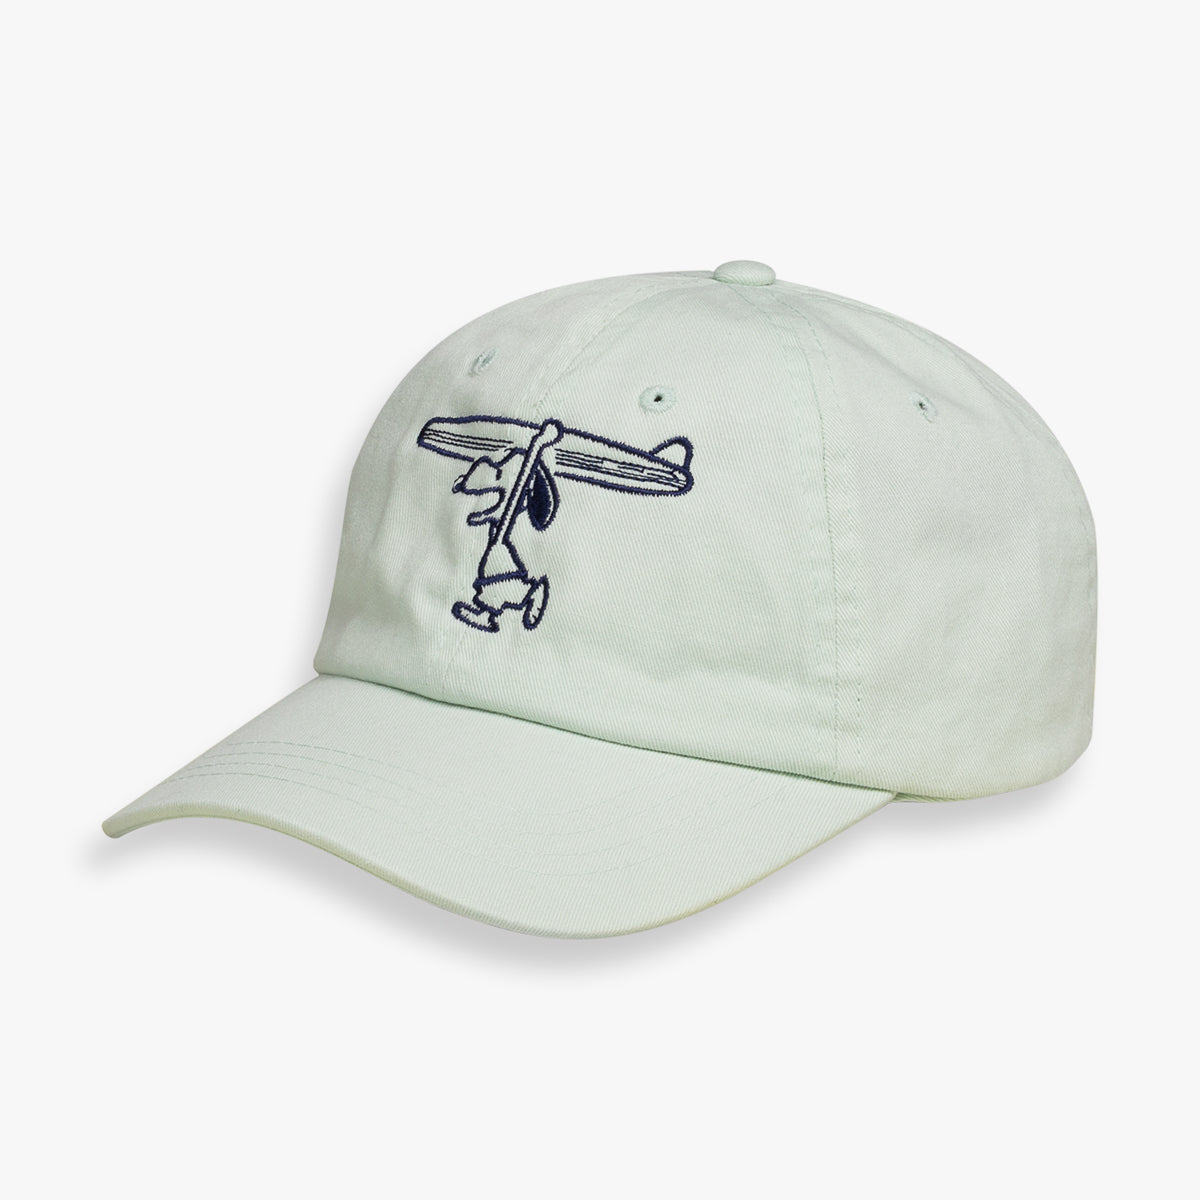 Snoopy Surf's Up Ballcap